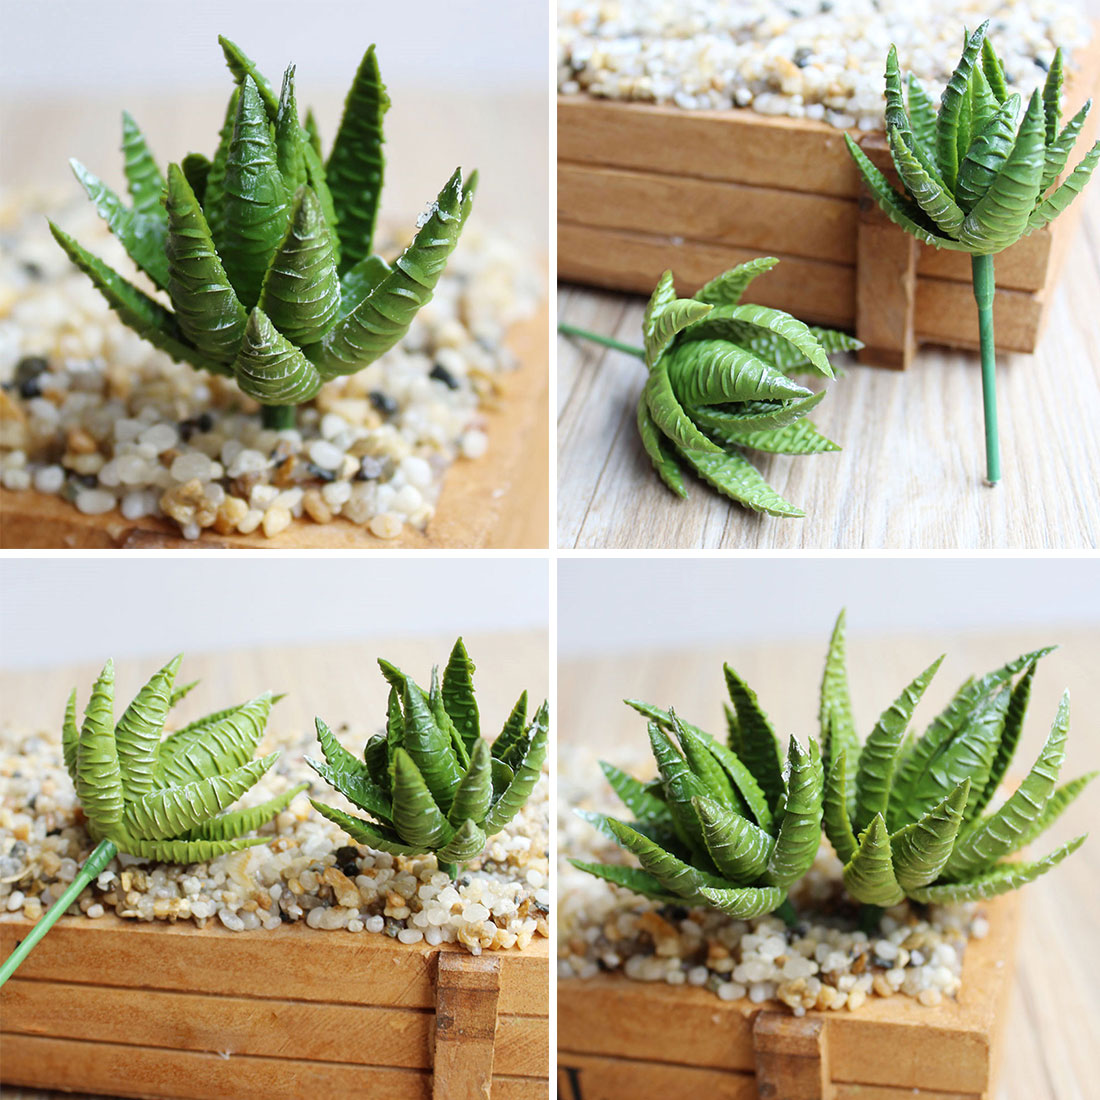 Flores artificiales para decoracion hogar 2PCS Artificial Succulents Plants Aloe Zebrina Plants Landscape Fake Flower